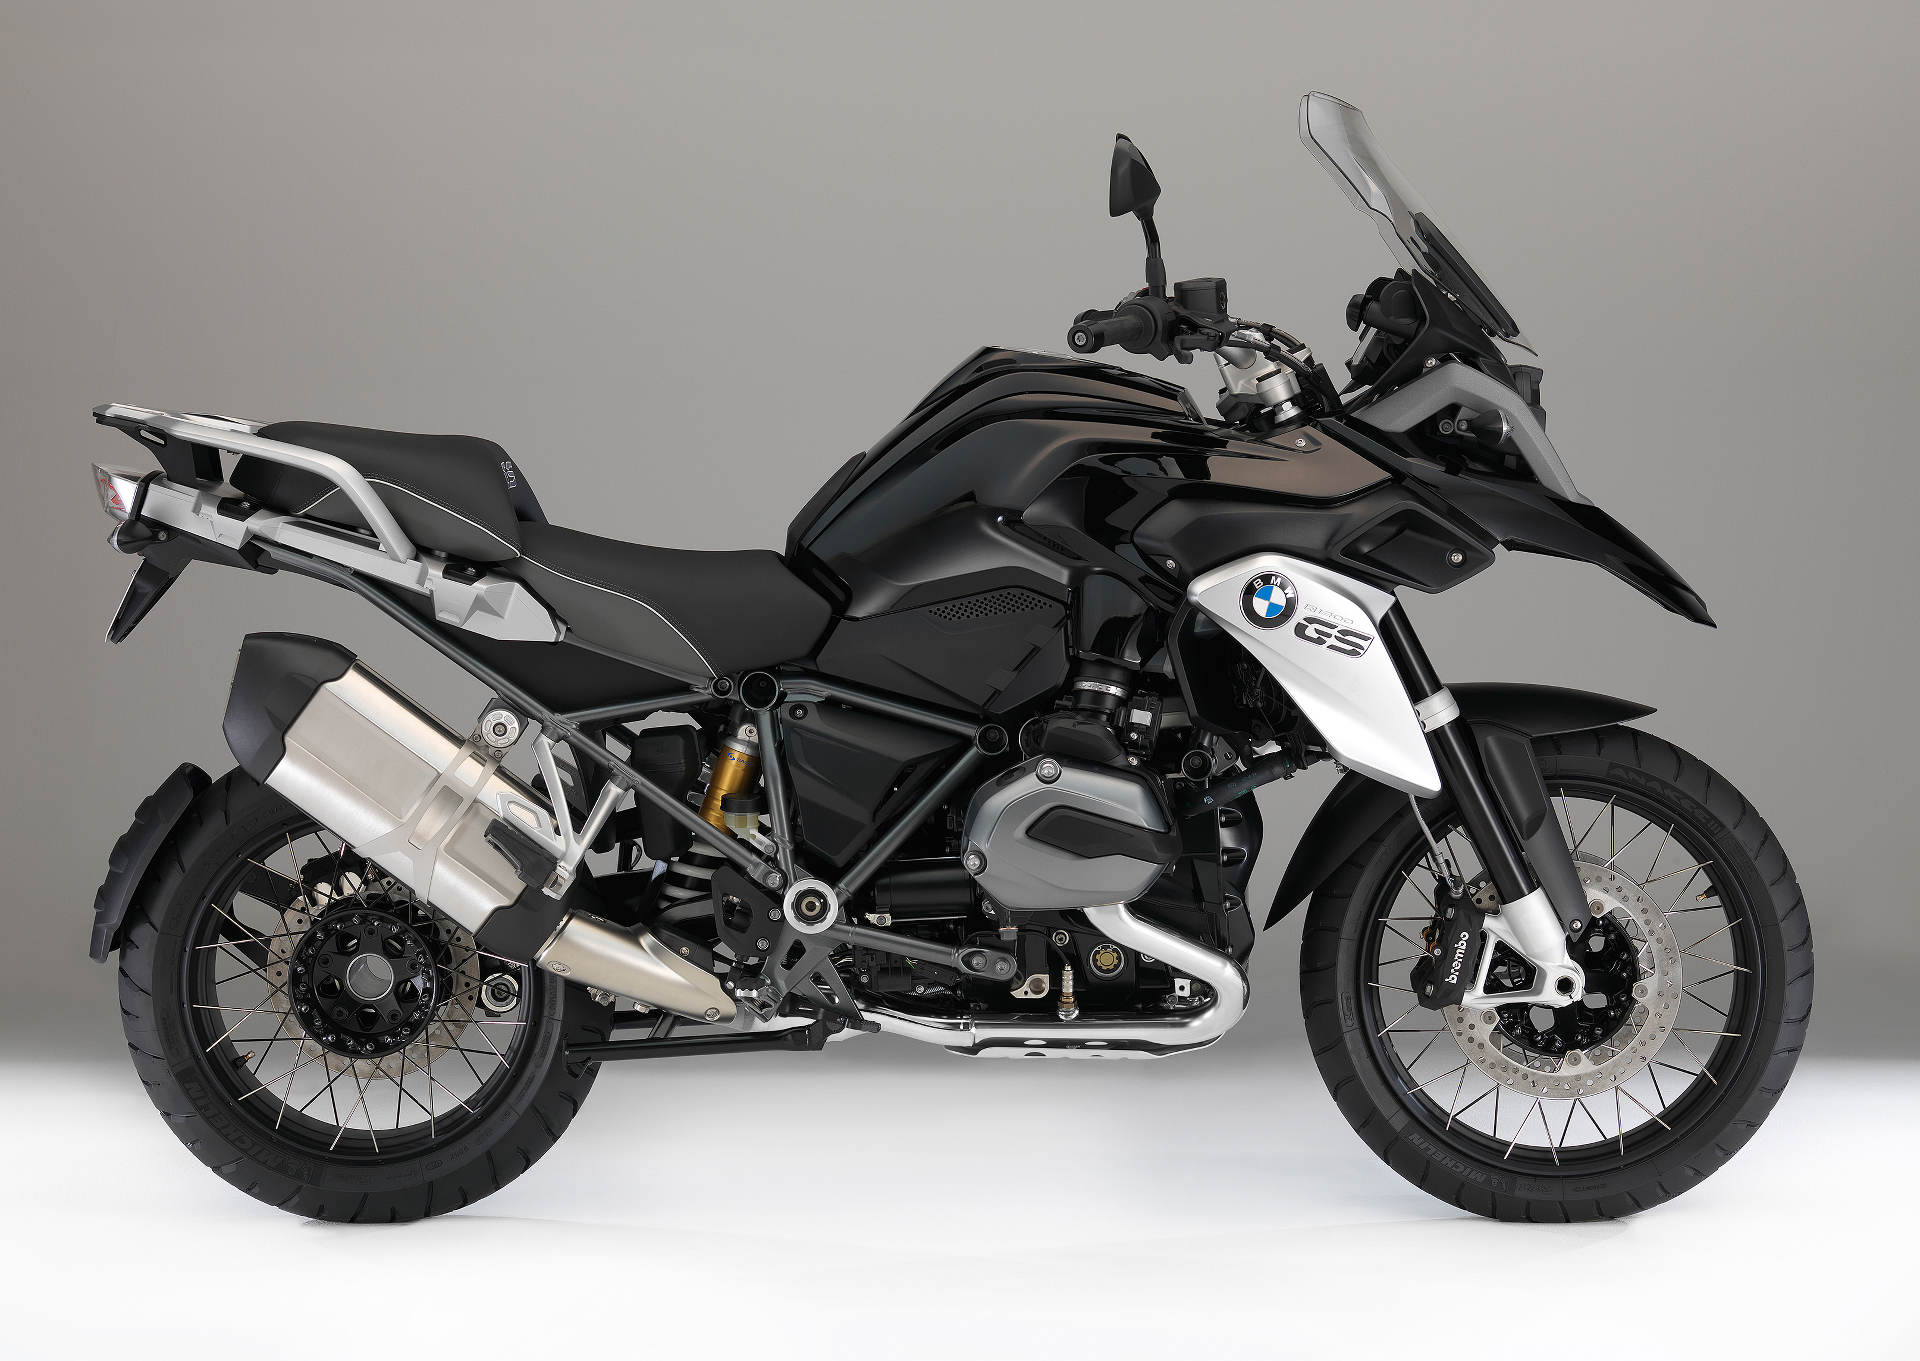 070315middle2 2016 Bmw R 1200 Gs